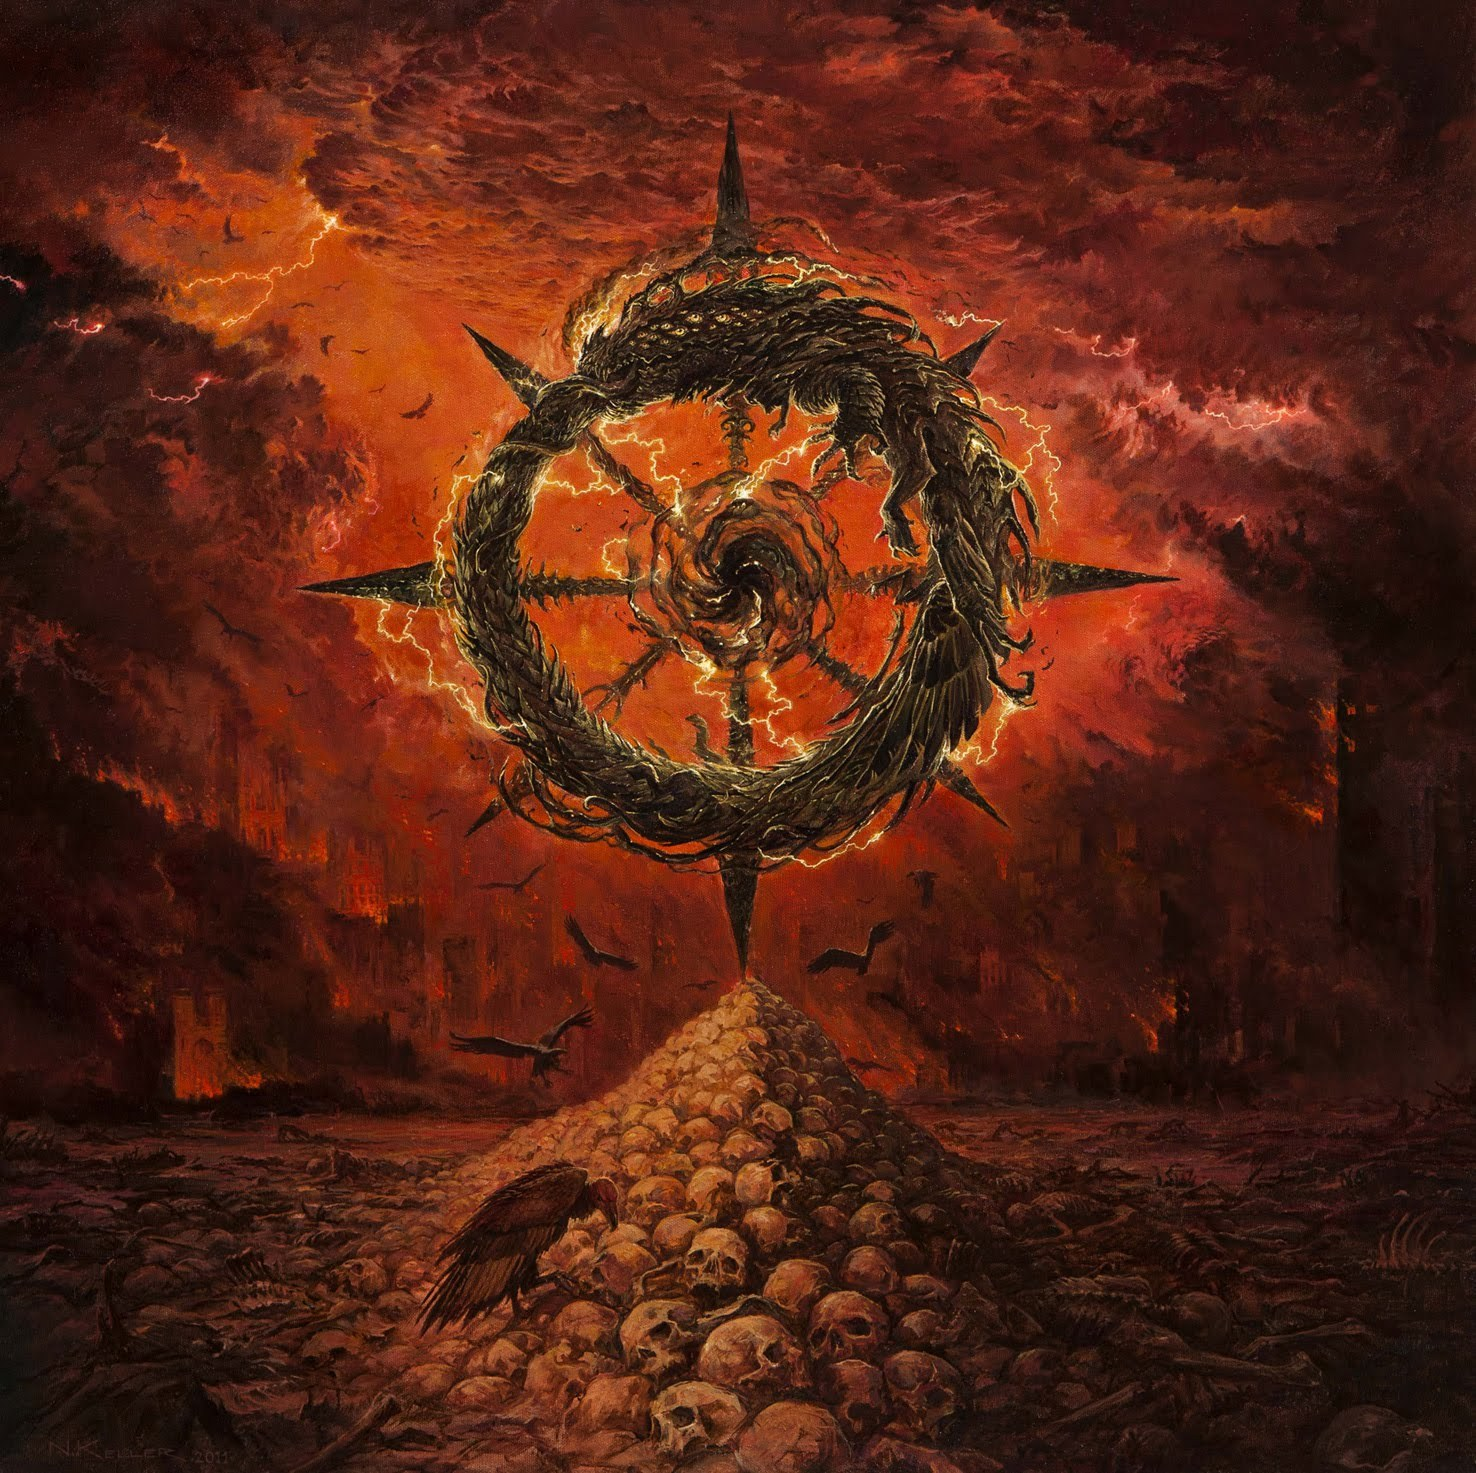 Heresiarch no clean singing